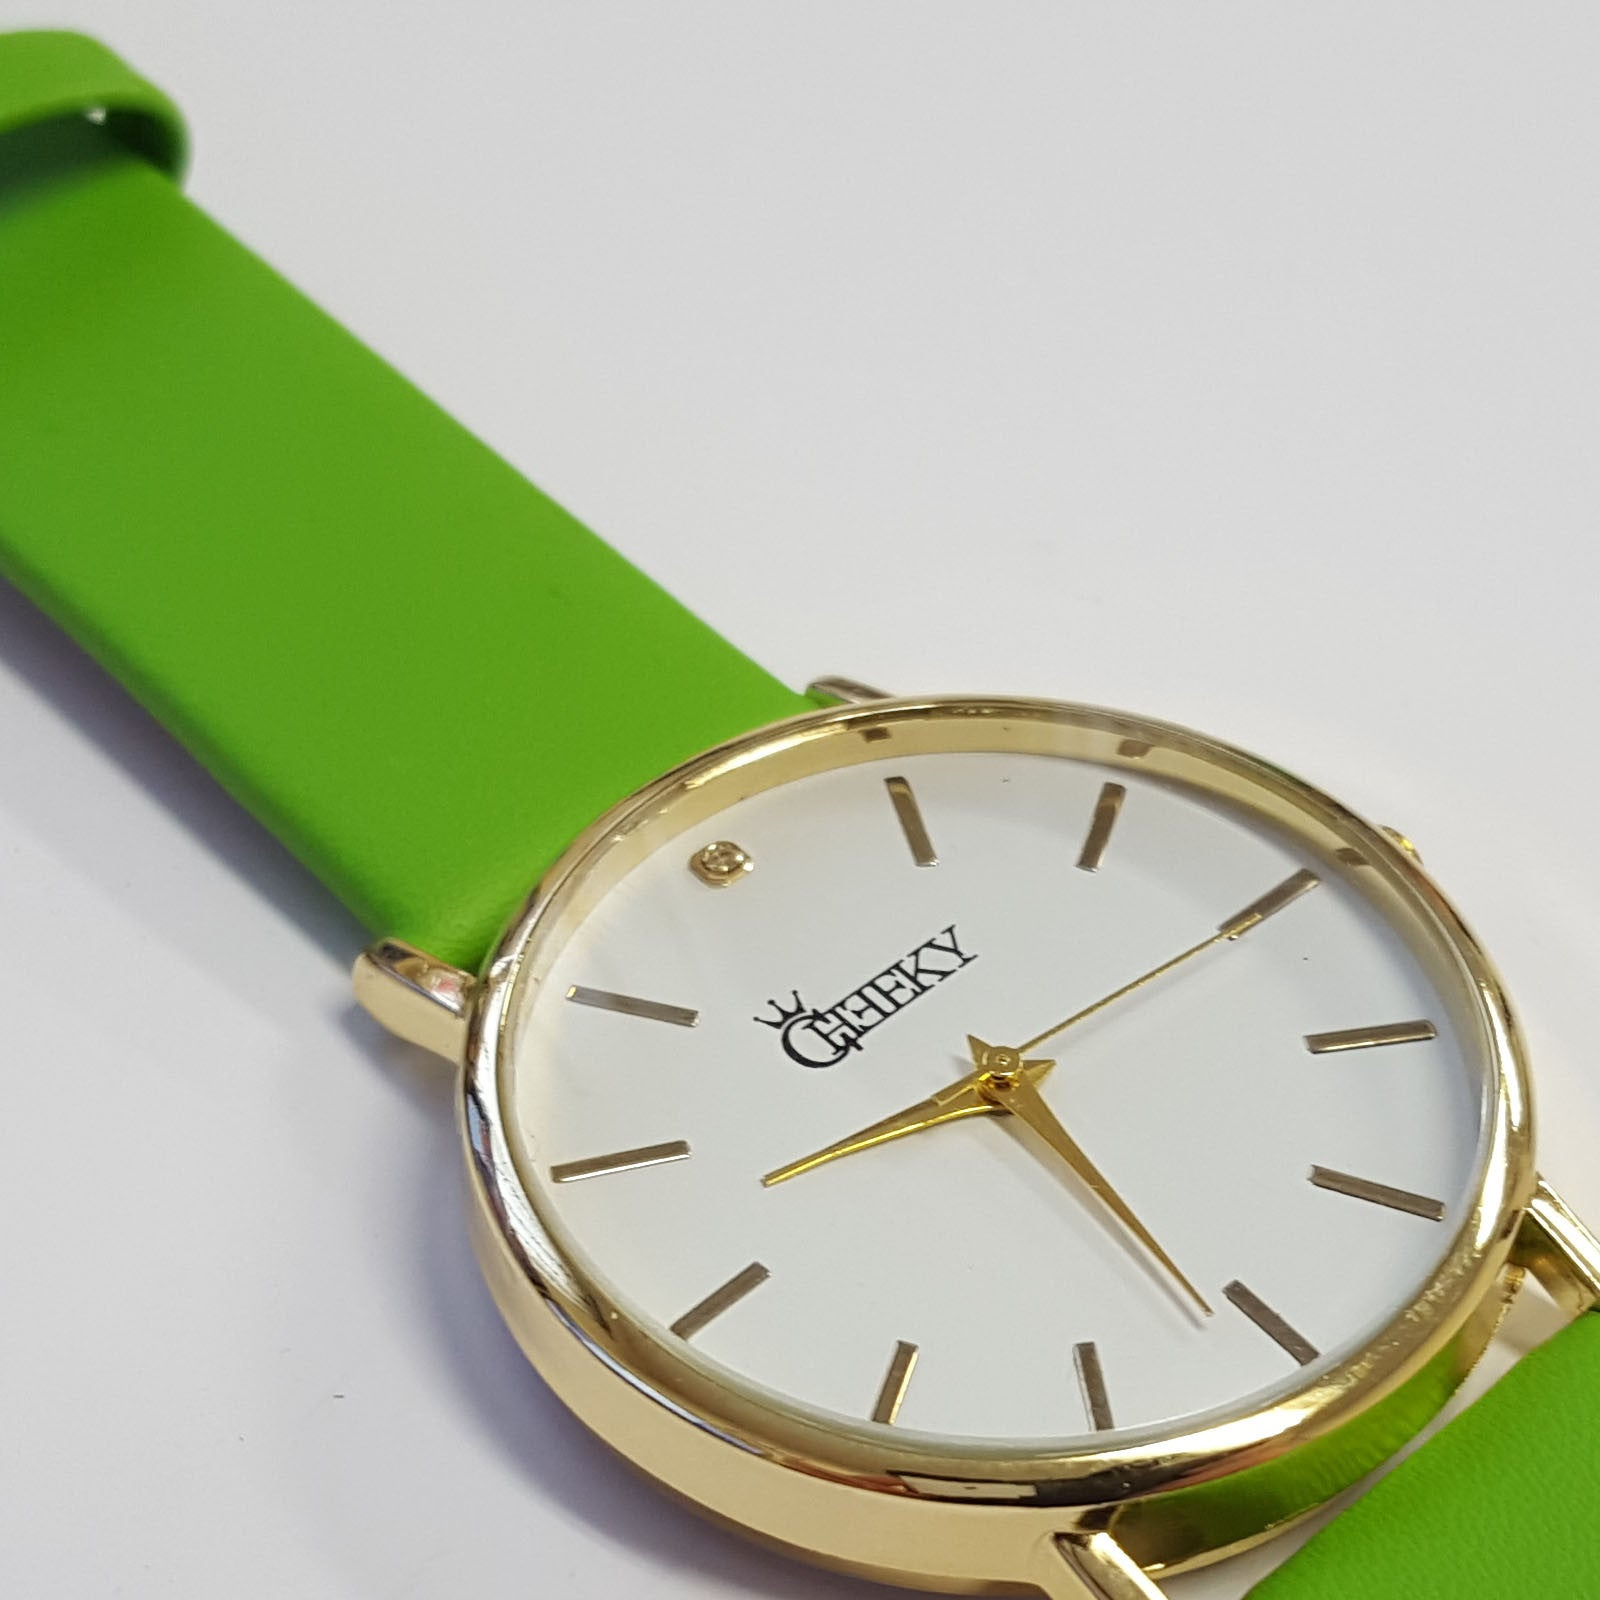 stainless gold product luxury watches customer steel strap satisfaction watch original green rose face